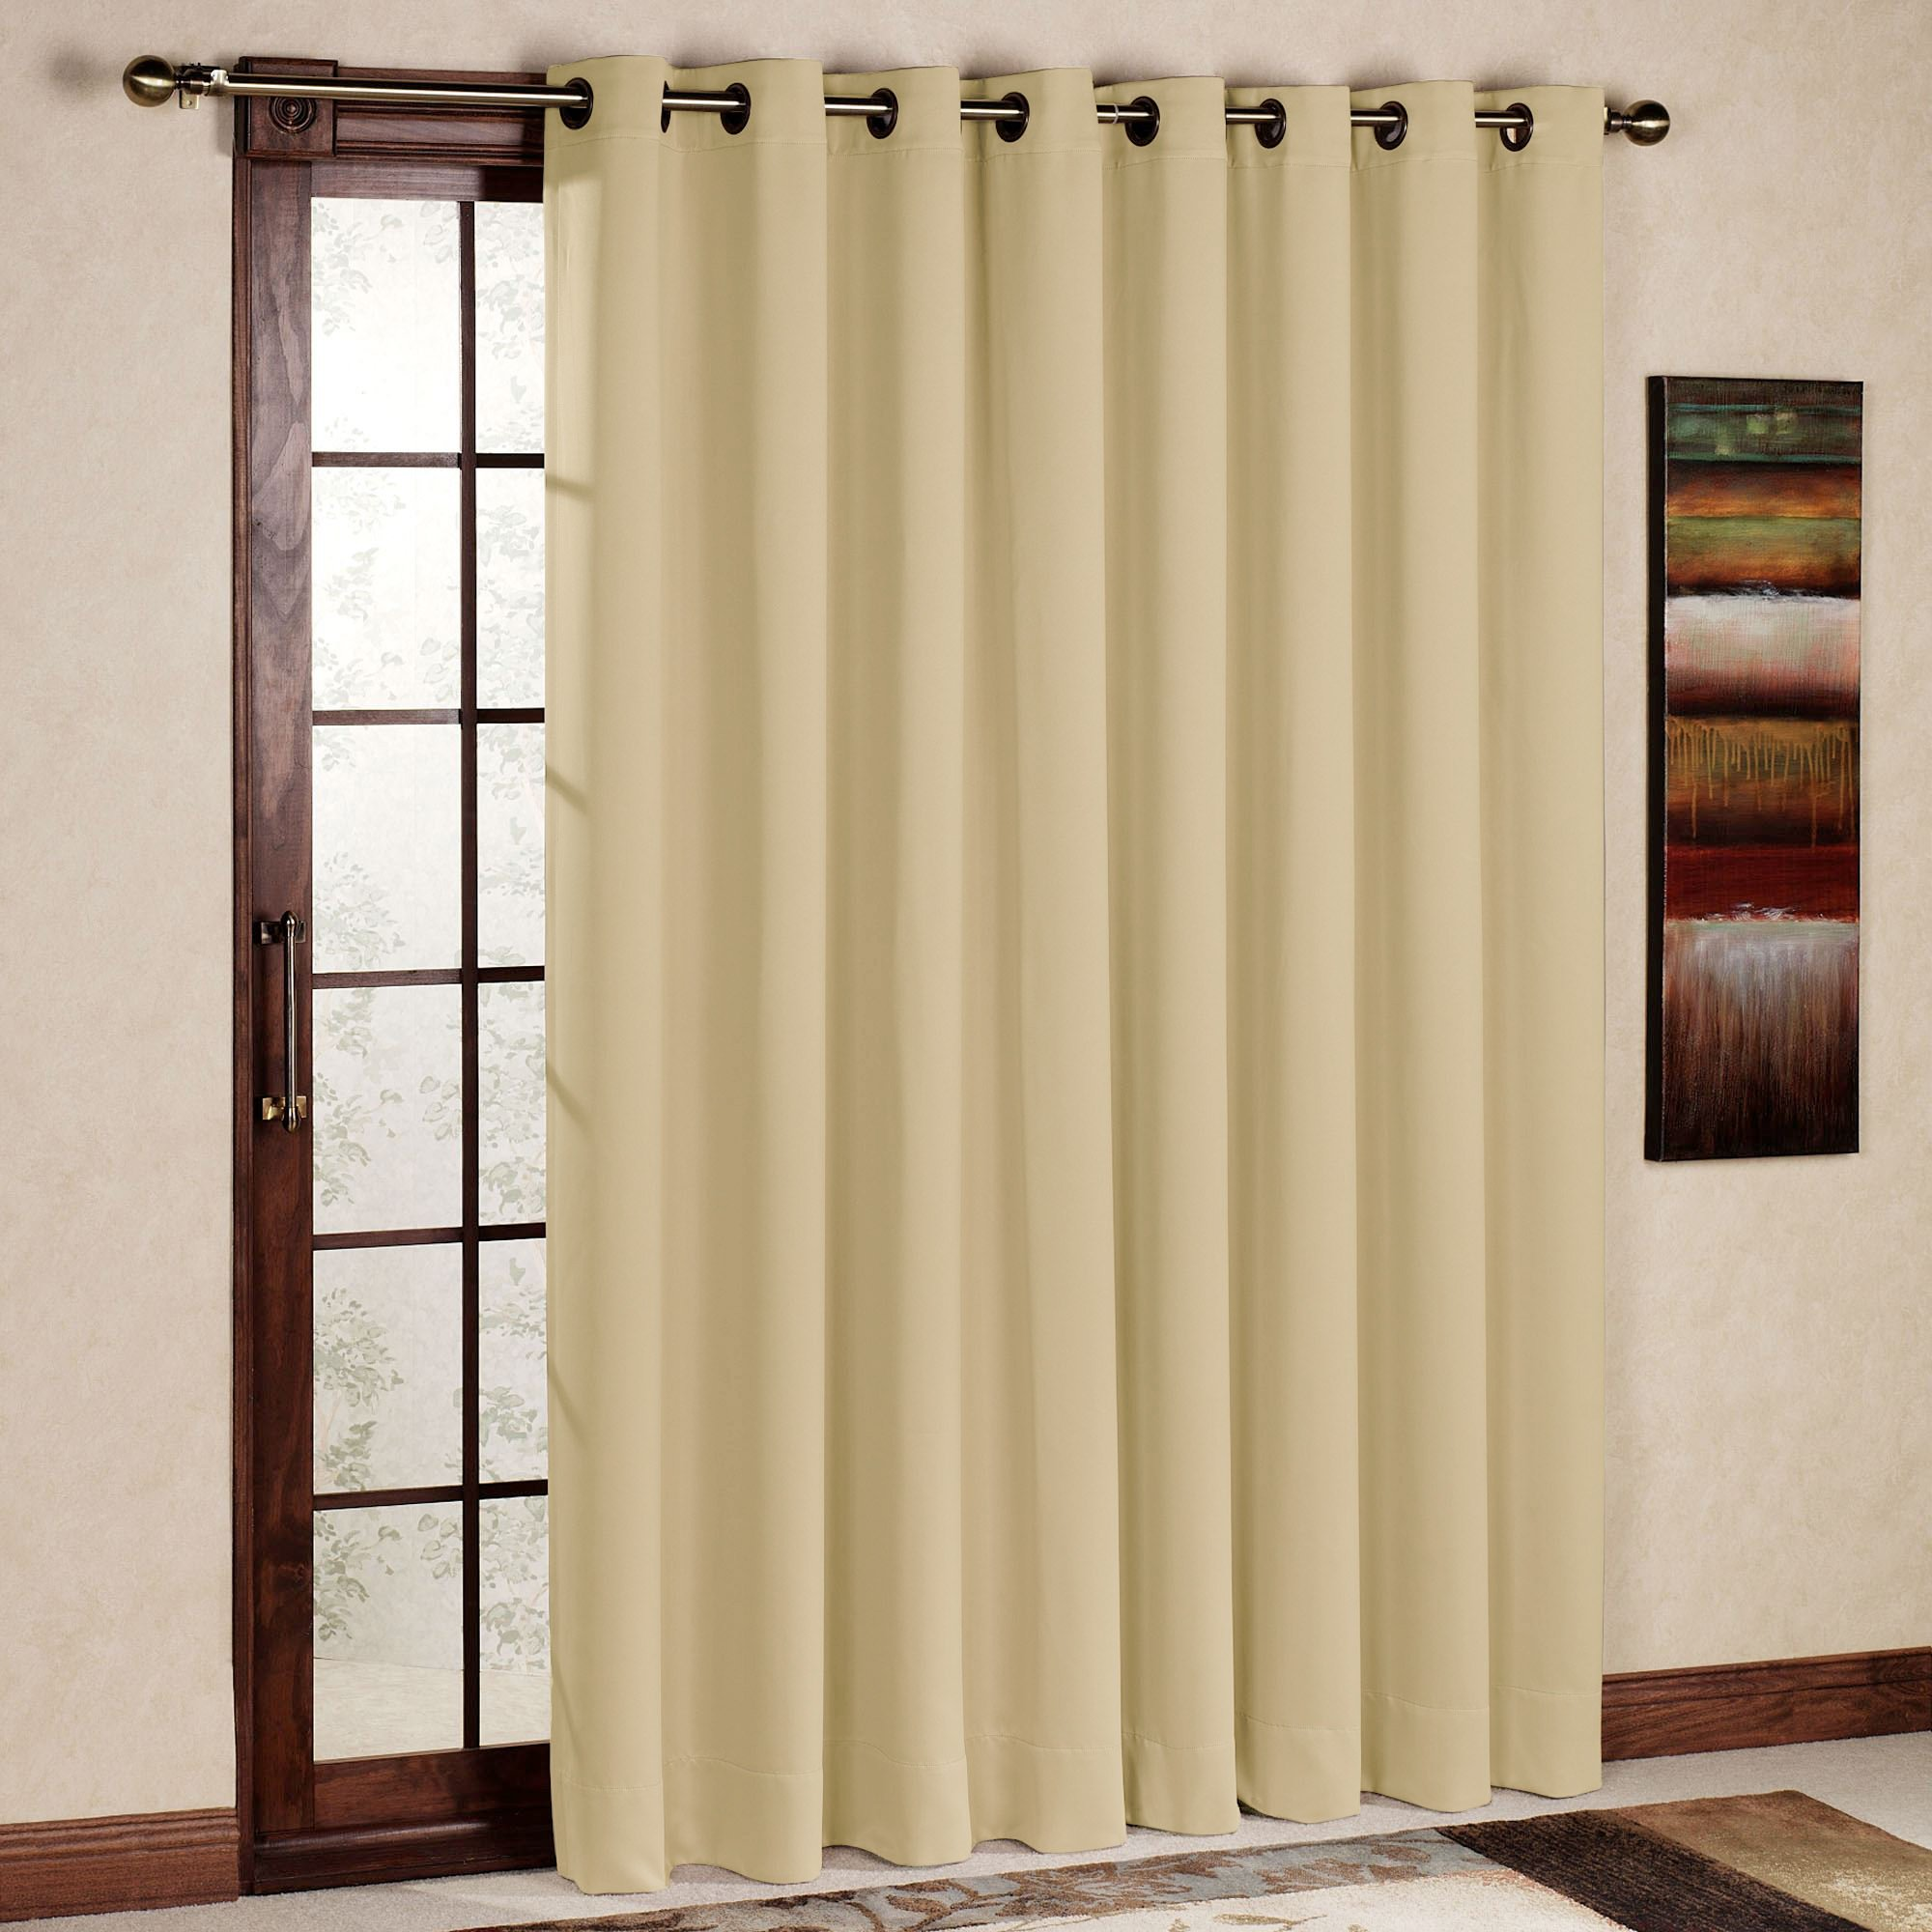 Sliding Door Curtain Rhf Wide Thermal Blackout Patio Door Curtain Panel Sliding Door Insulated Curtains Thermal Curtains Extra Wide Curtains 100w By 84l Inches Beige